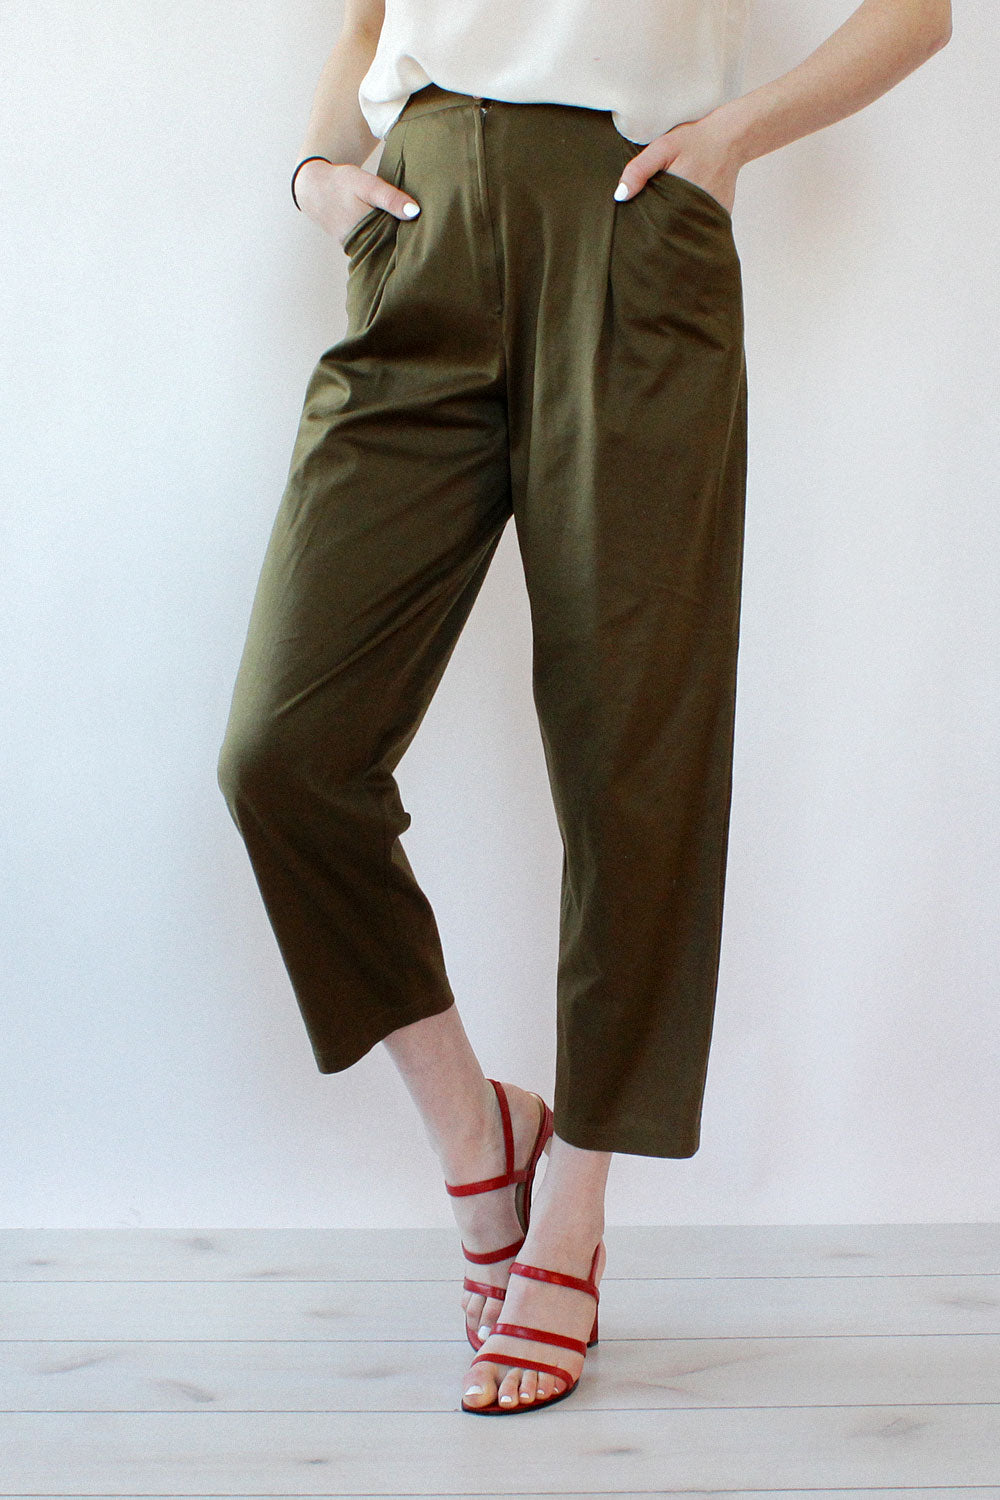 Charles Jourdan Olive Crop Trousers XS/S